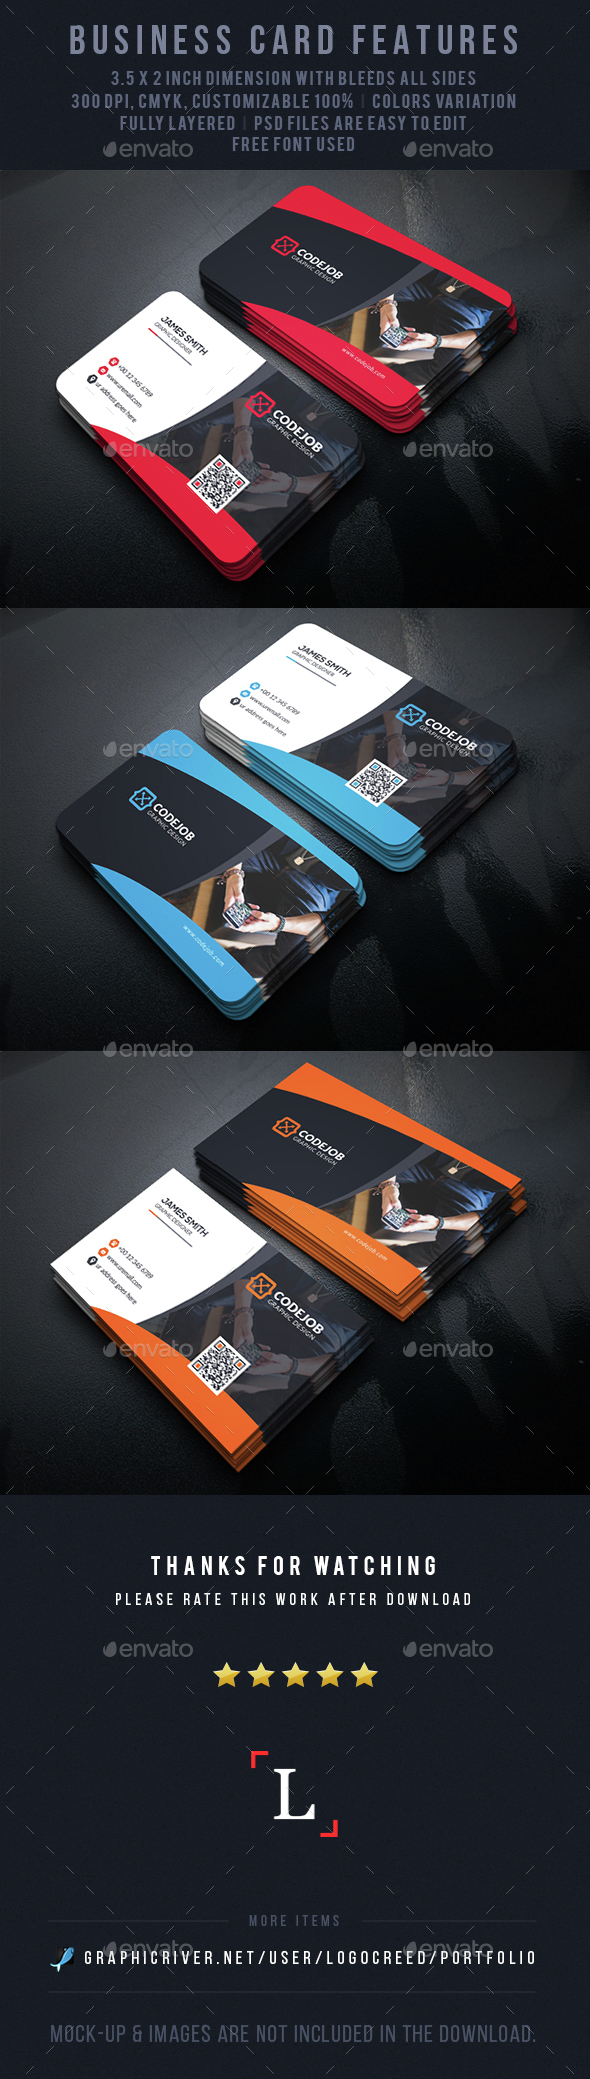 Creatives Business Card - Business Cards Print Templates